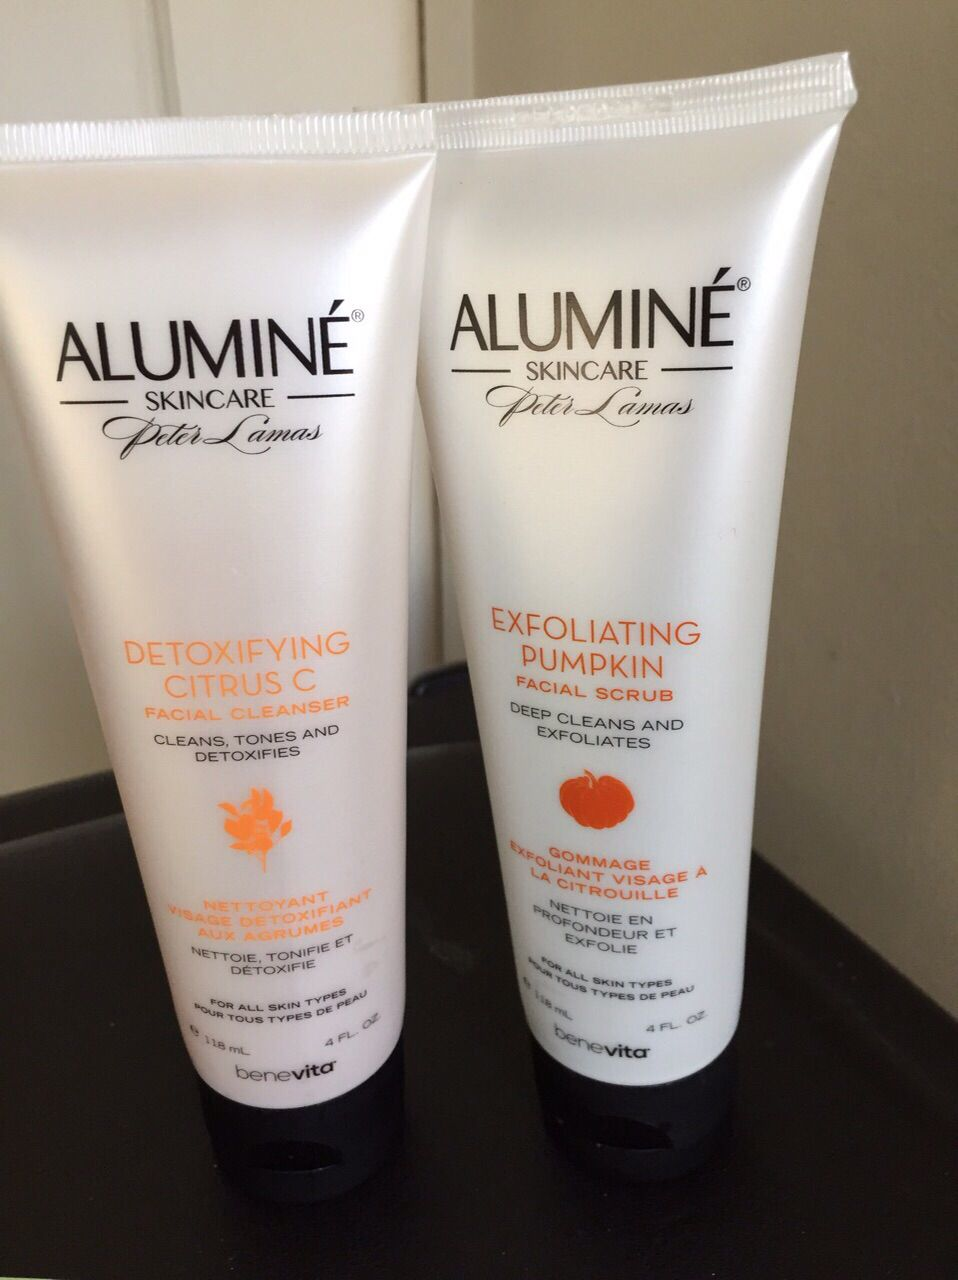 Hi everyone, i just tried these products from aluminé by Peter Lamas and i have no words to describe it!  Peter Lamas is the international expert in cosmetology and has worked with Grace Kelly, Elizabeth Taylor, Diana Ross, Carolina Herrera, etc etc... And worked in the hair and makeup field for Vogue, Glamour and mademoiselle.  This products are based in science and nature combined to archieve the best results for our skin and hair. By them at : http://cristineloureiro.acnshop.eu/